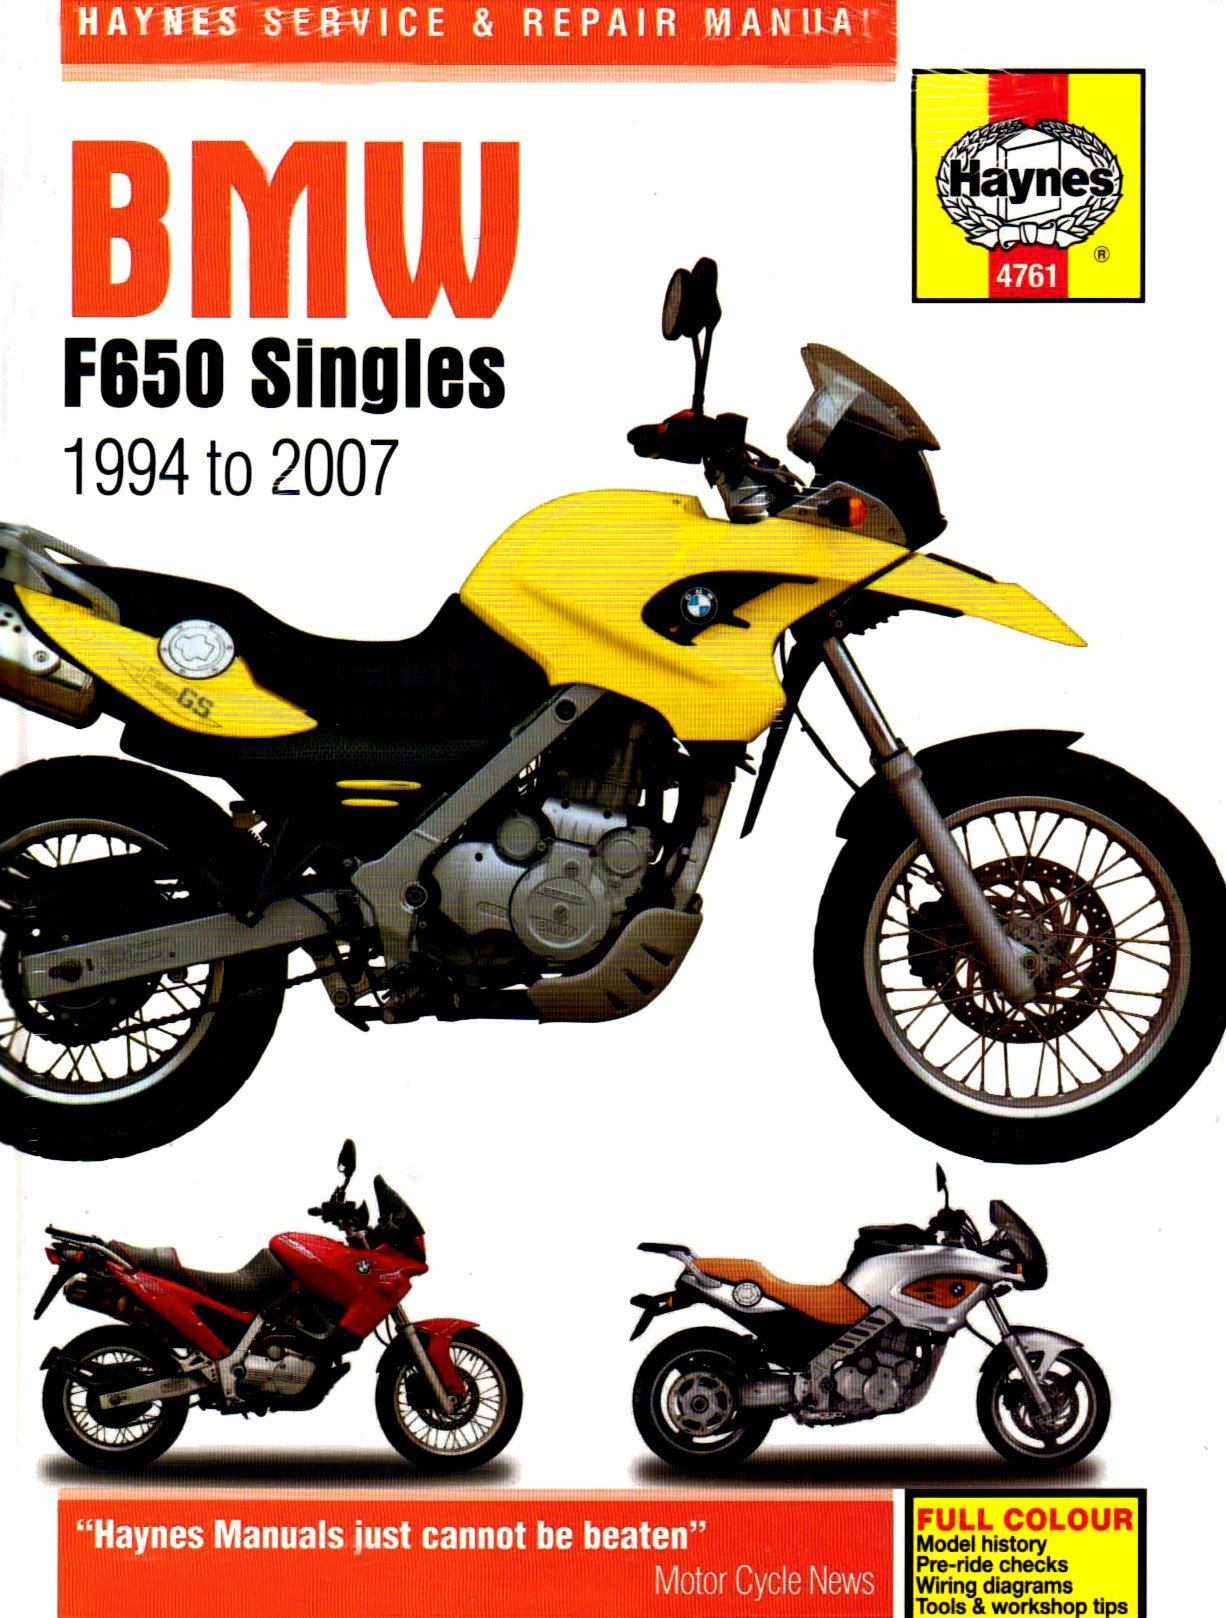 haynes bmw f650 singles manual 4761 hardcover – 2009